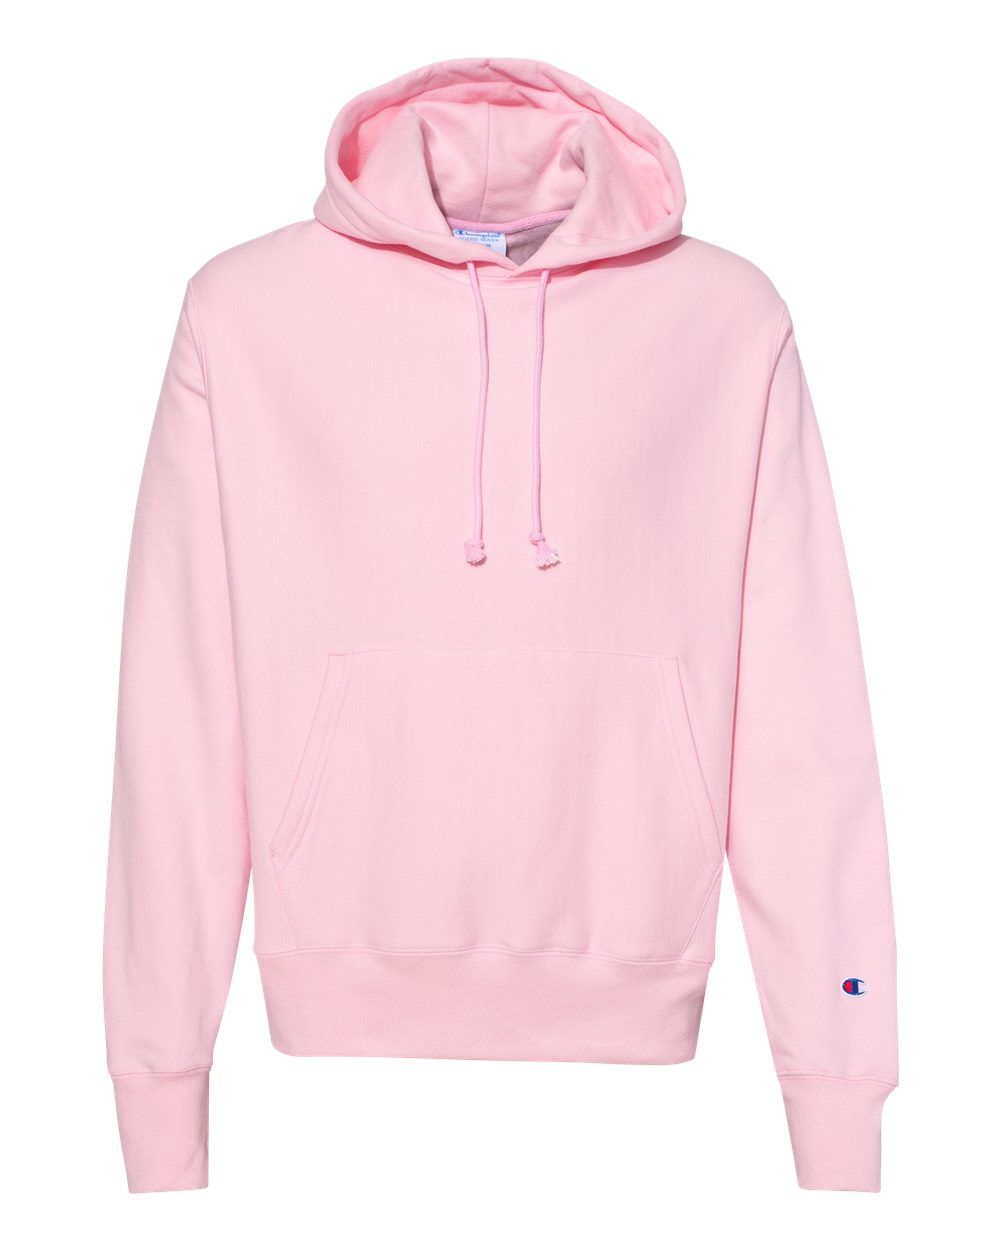 Front View Champion Reverse Weave Pullover Hoodie With Chest C Logo In Pink Candy Champion Clothing Pink Hoodie Outfit Zumiez Outfits [ 1209 x 800 Pixel ]